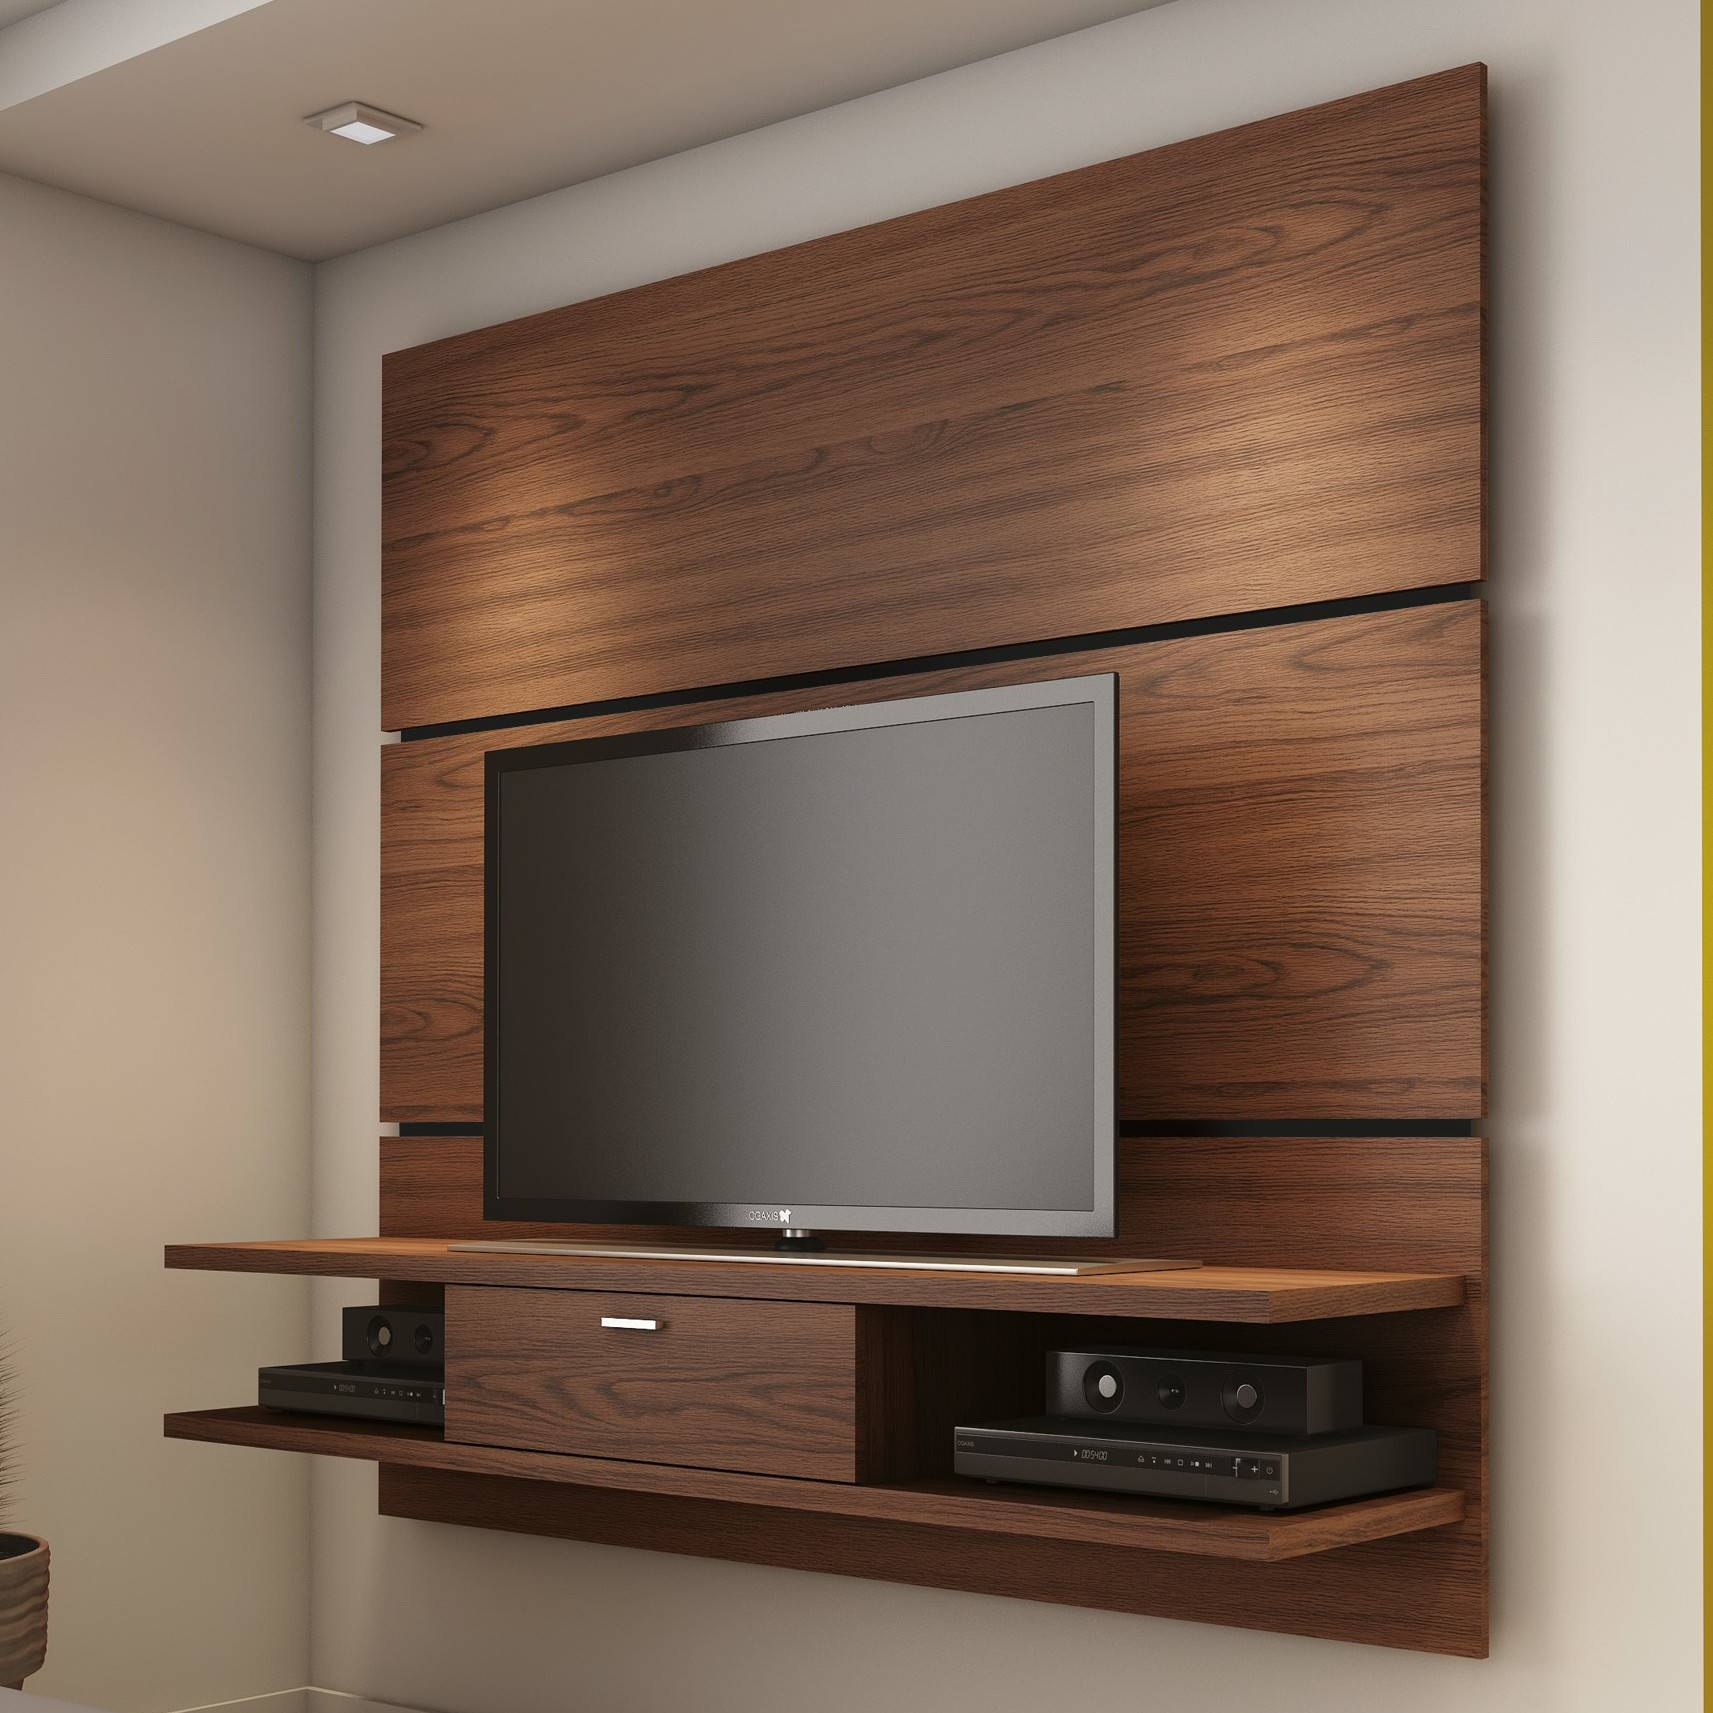 Wall Units: Astonishing Wall Display Units & Tv Cabinets Outdoor Intended For Wall Display Units And Tv Cabinets (View 14 of 15)